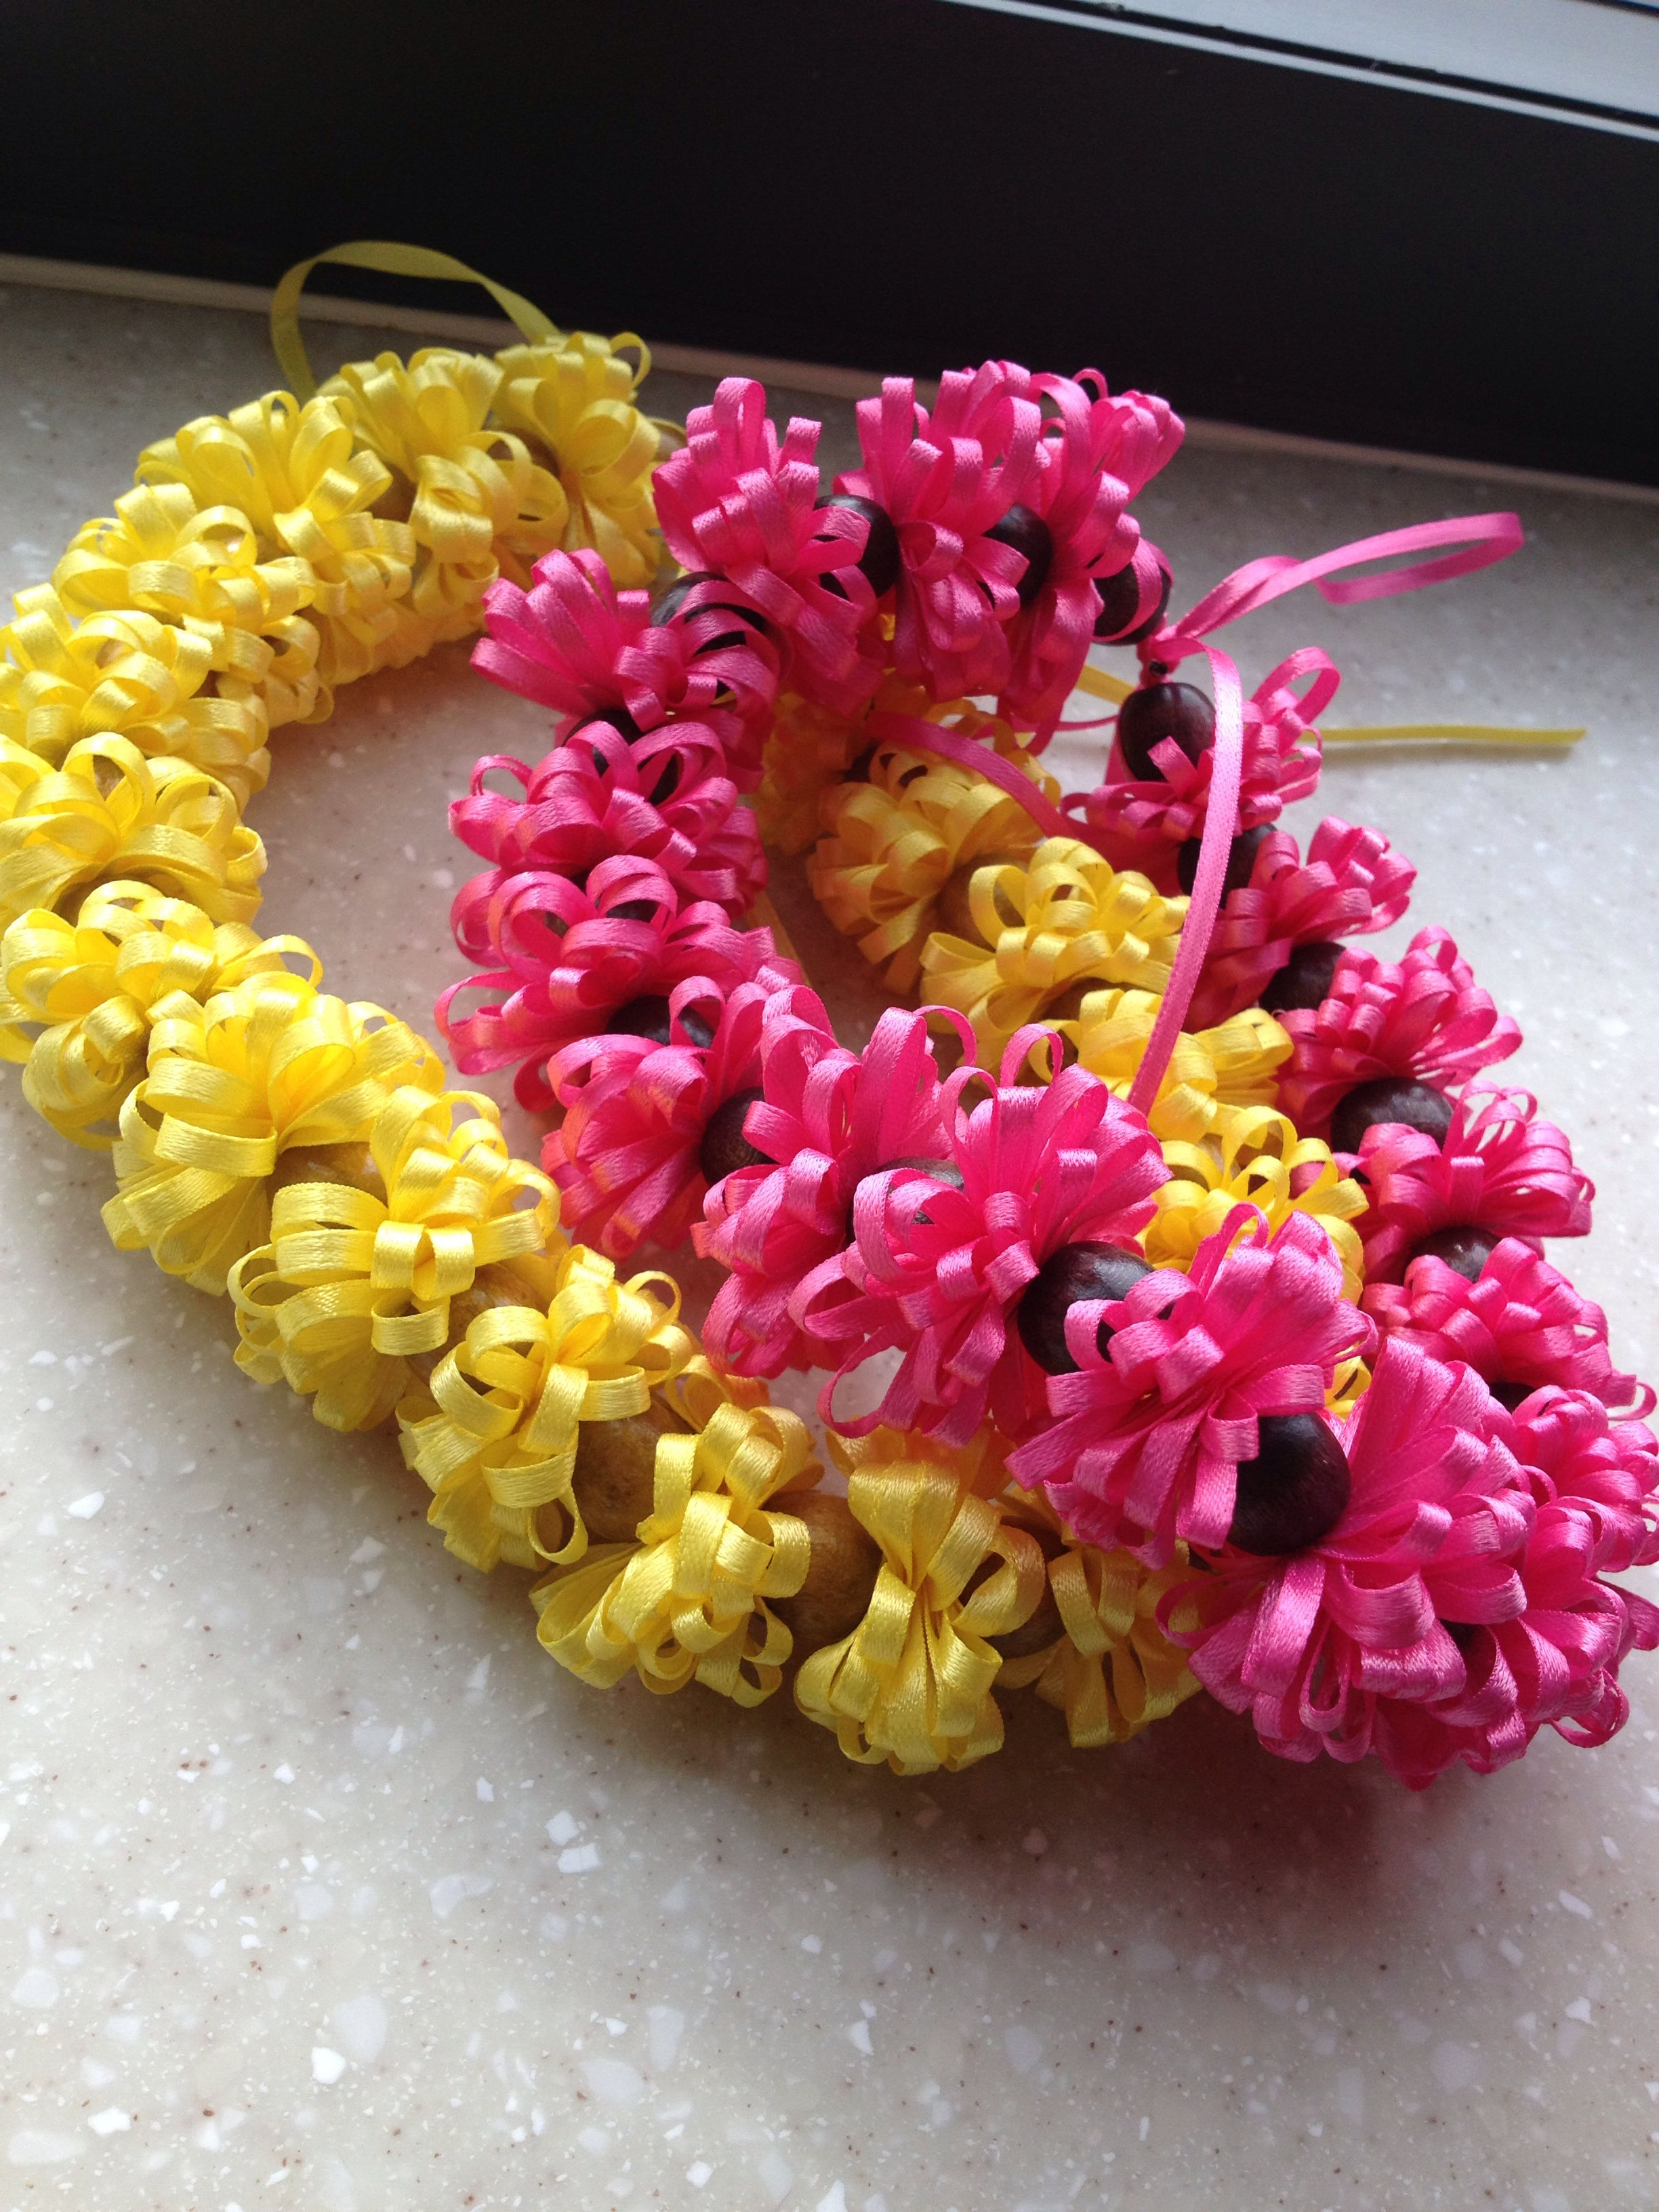 Mini handmade hawaiian leis i made to keep my mind off of things mini handmade hawaiian leis i made to keep my mind off of things would you like one too email me at evaisallaboutyougmail izmirmasajfo